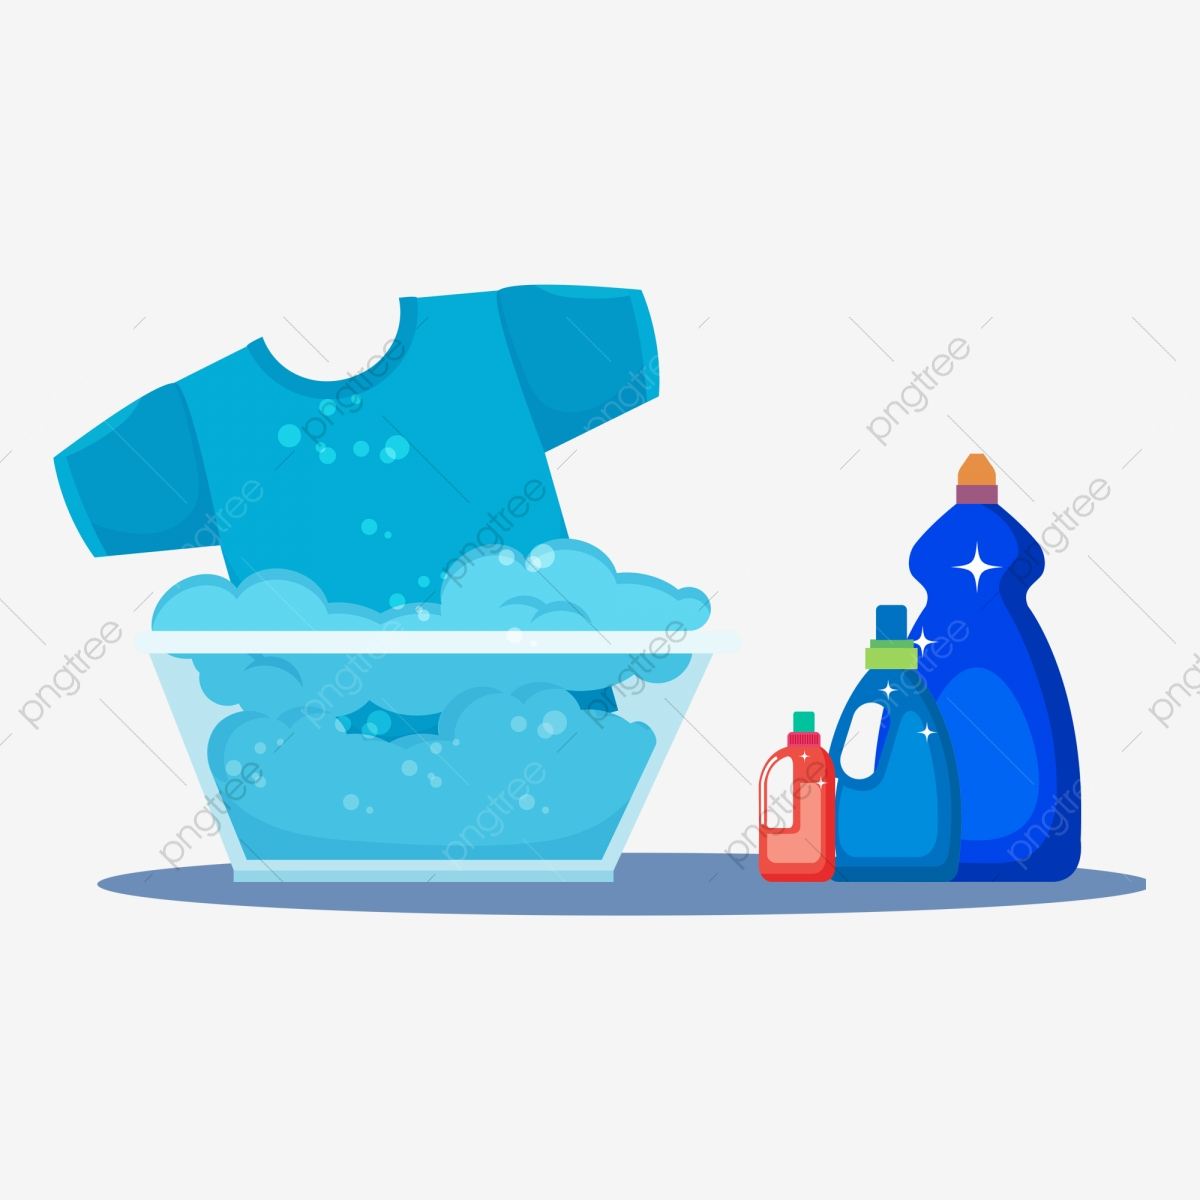 Cleaning clipart laundry supply. Supplies product washing things